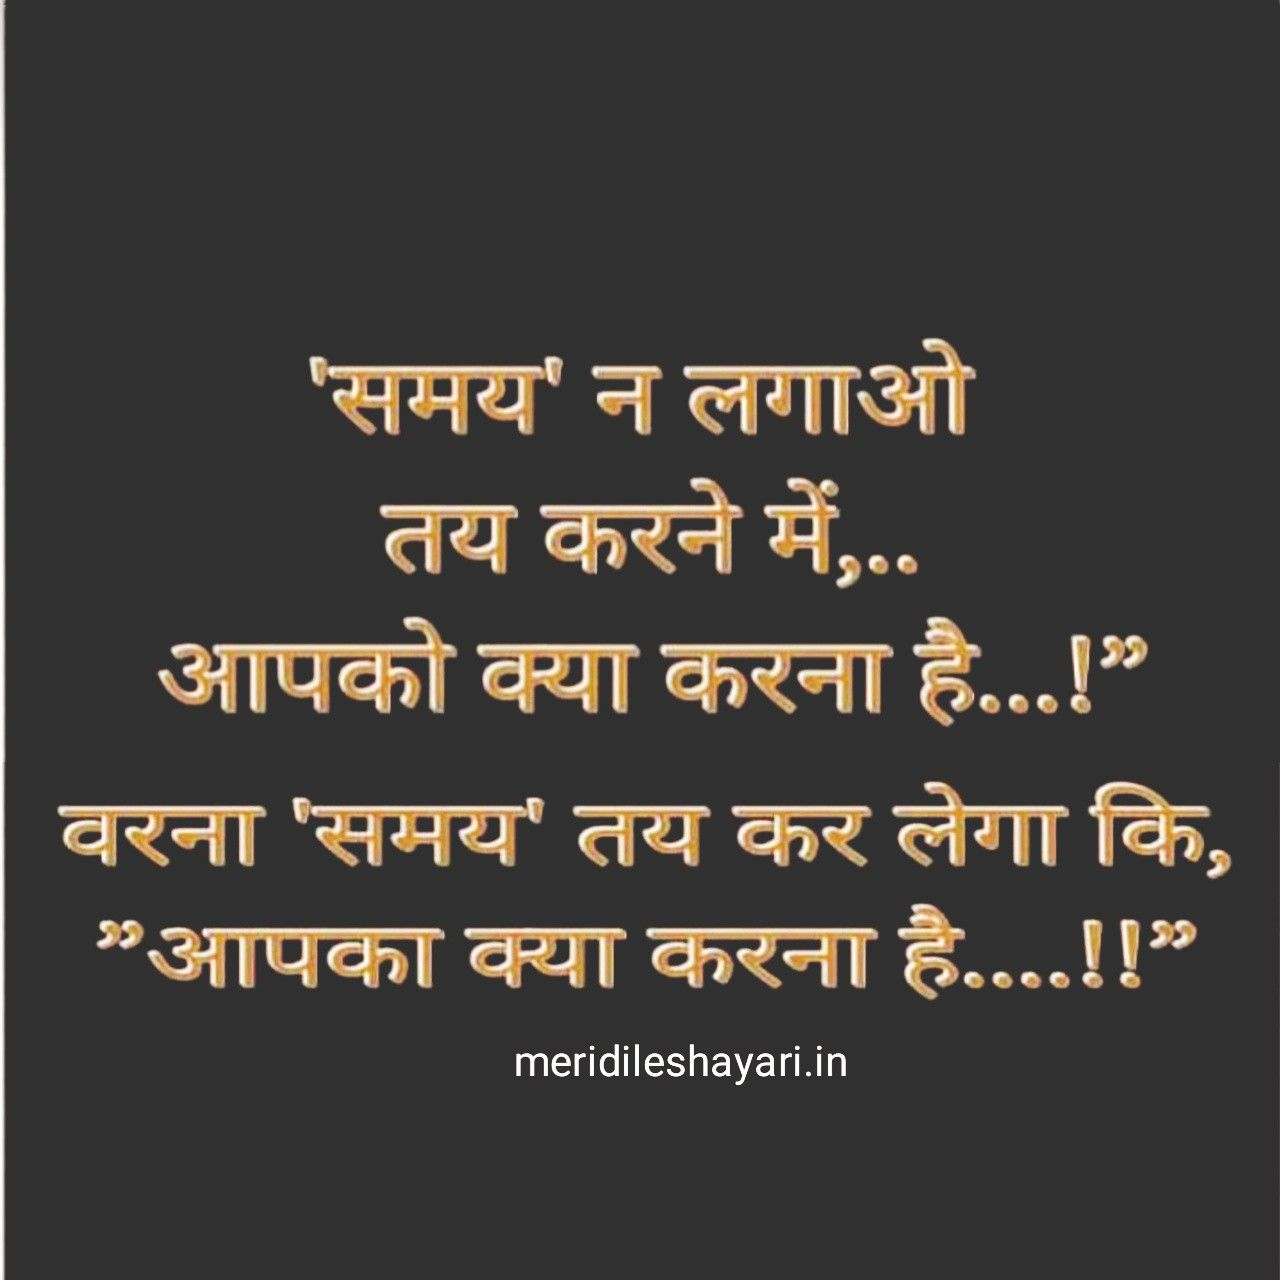 Hindi Shayari Collection With Images Motivational Picture